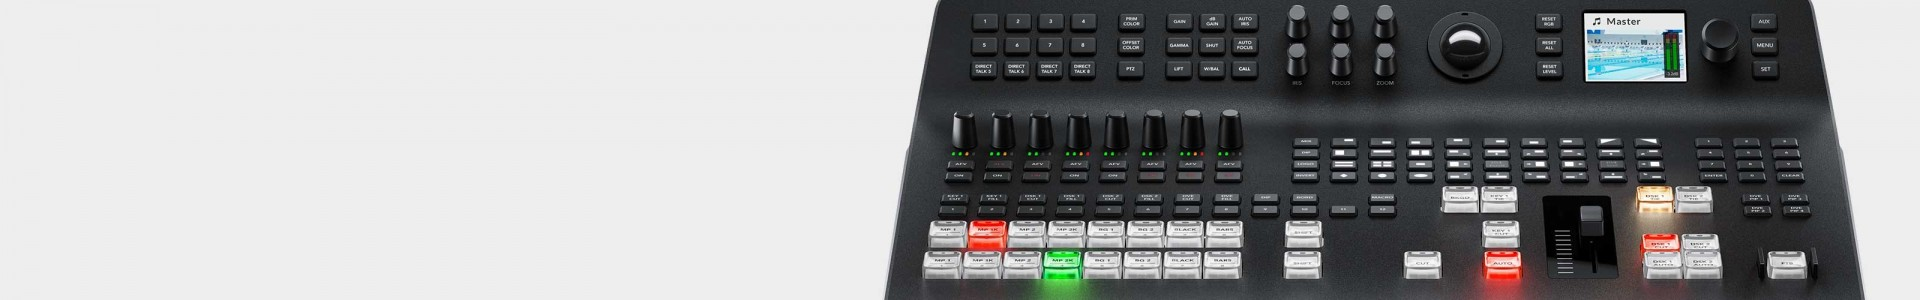 Blackmagic video mixers - Avacab official dealer